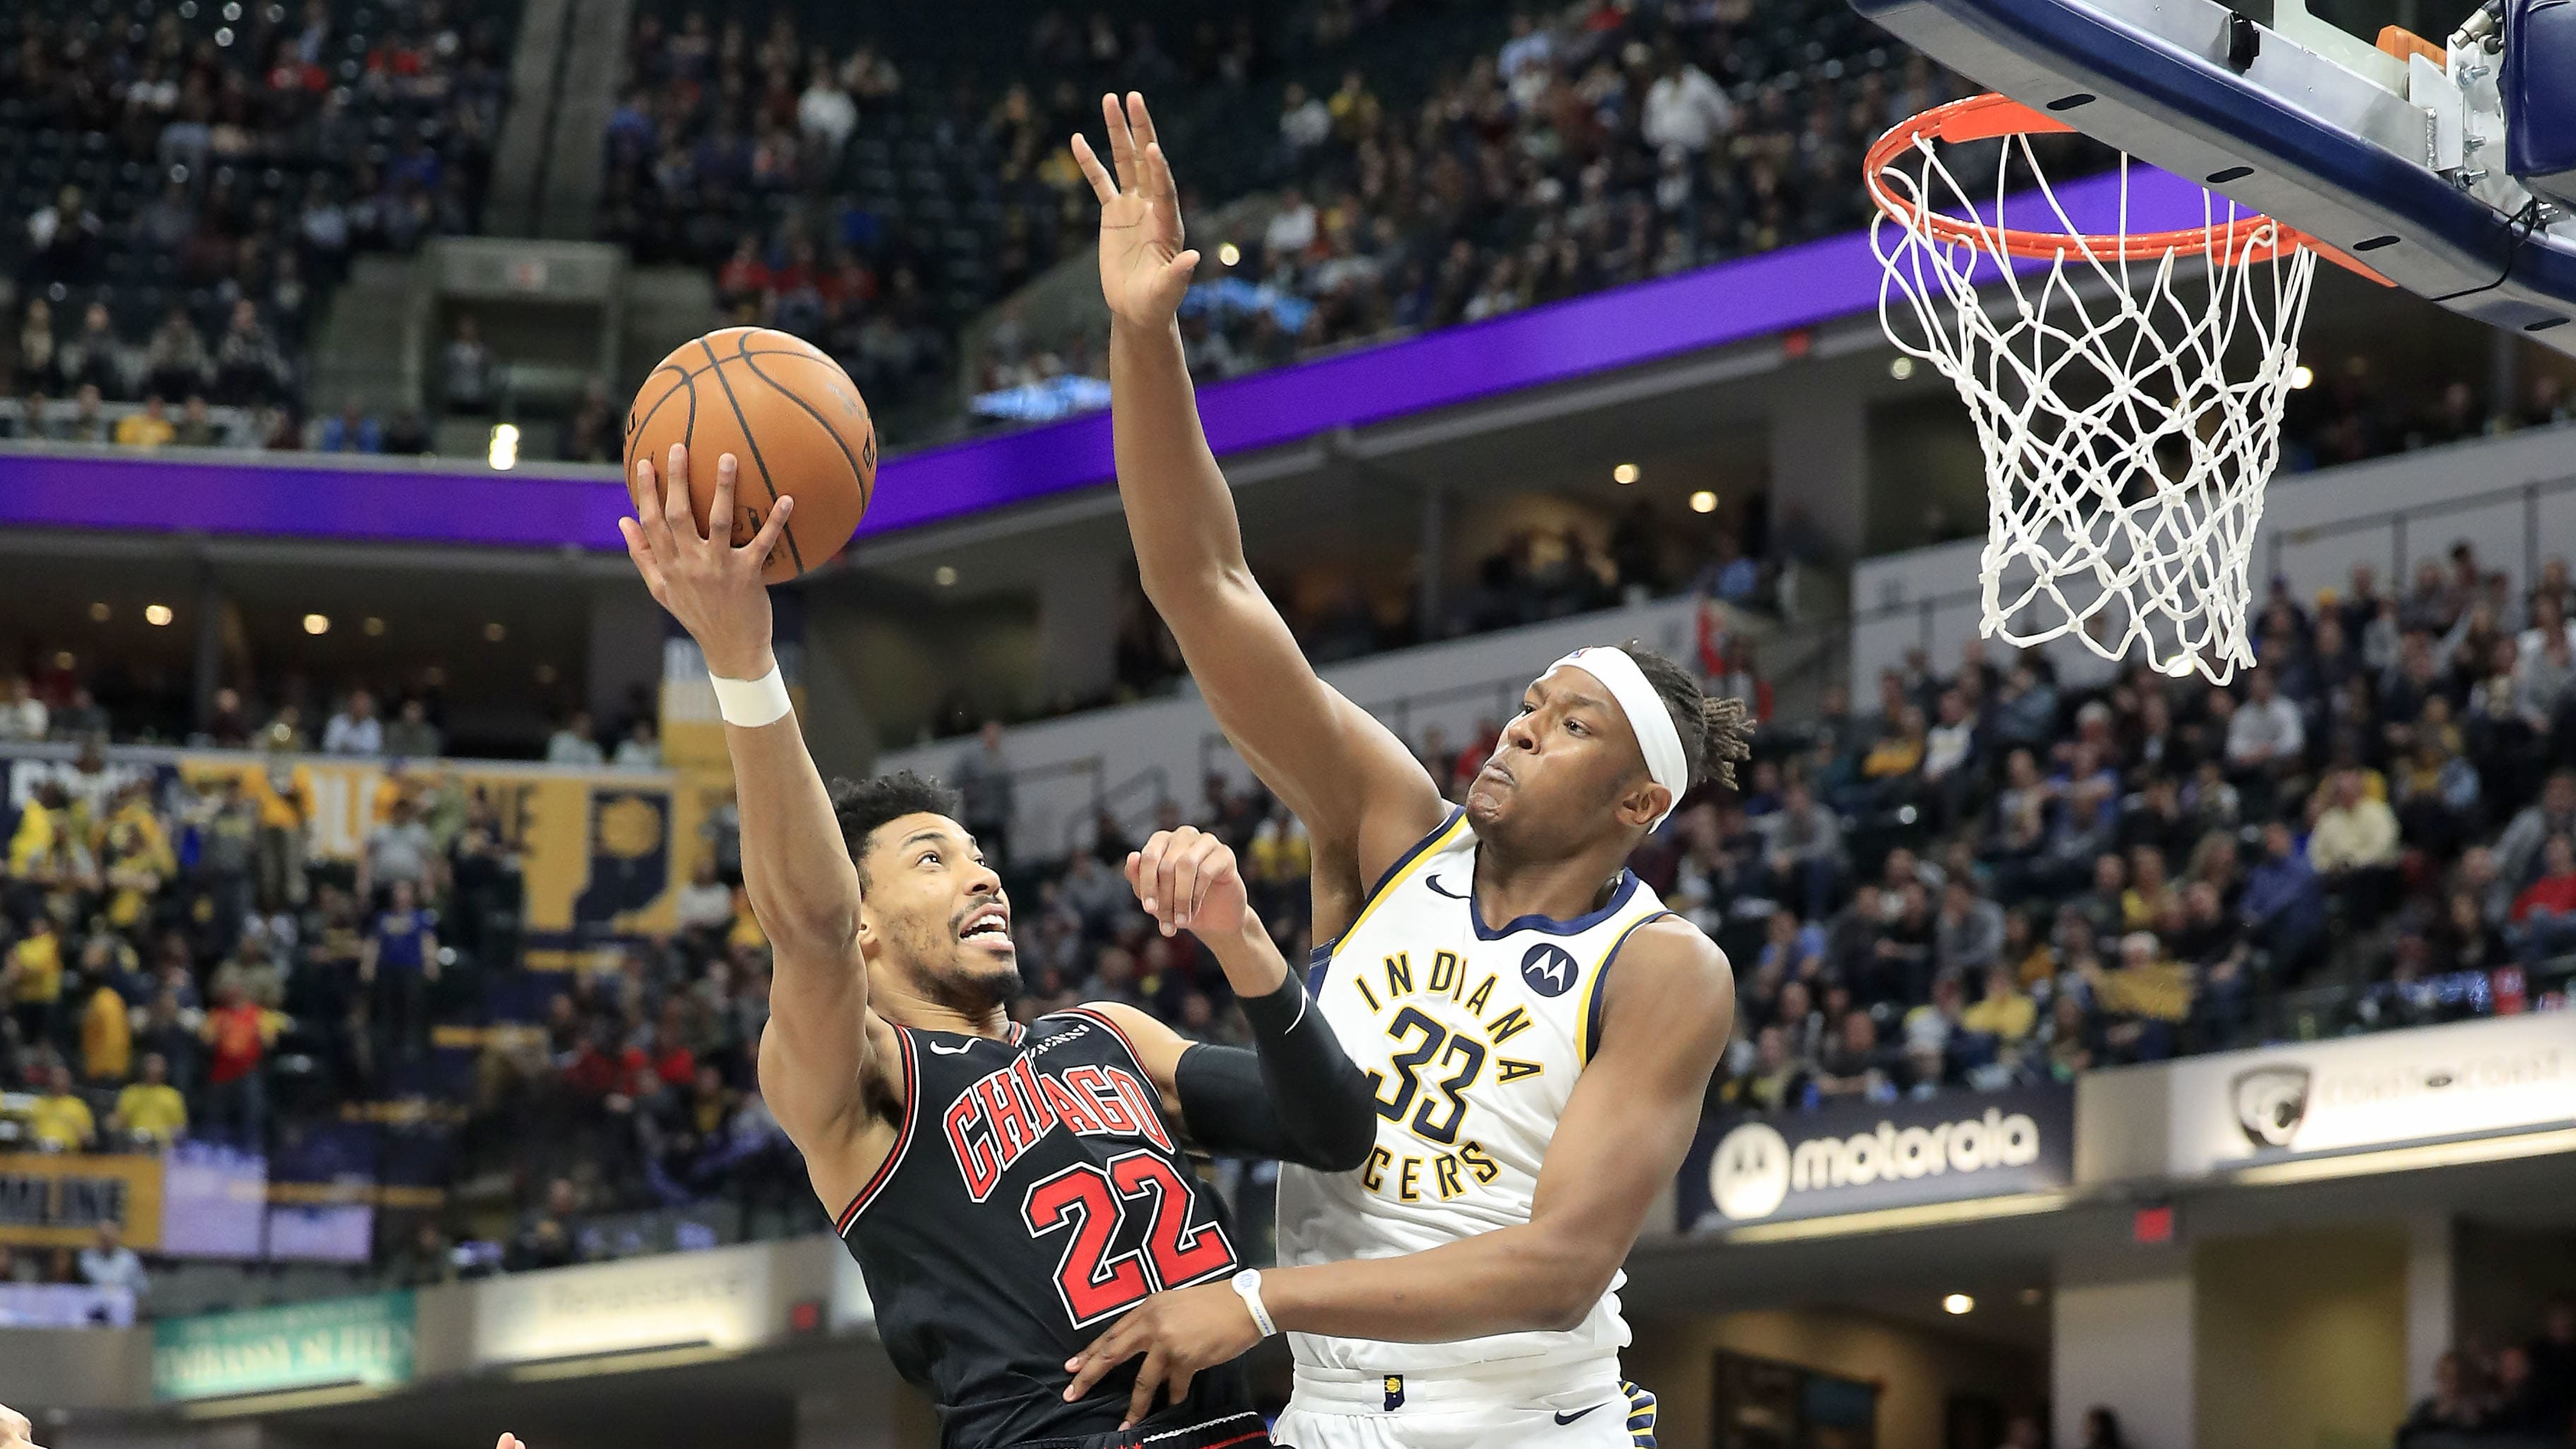 INDIANAPOLIS, INDIANA - MARCH 05:  Otto Porter Jr #22 of the Chicago Bulls shoots the ball while defended by Myles Turner #33 of the Indiana Pacers at Bankers Life Fieldhouse on March 05, 2019 in Indianapolis, Indiana. (Photo by Andy Lyons/Getty Images)